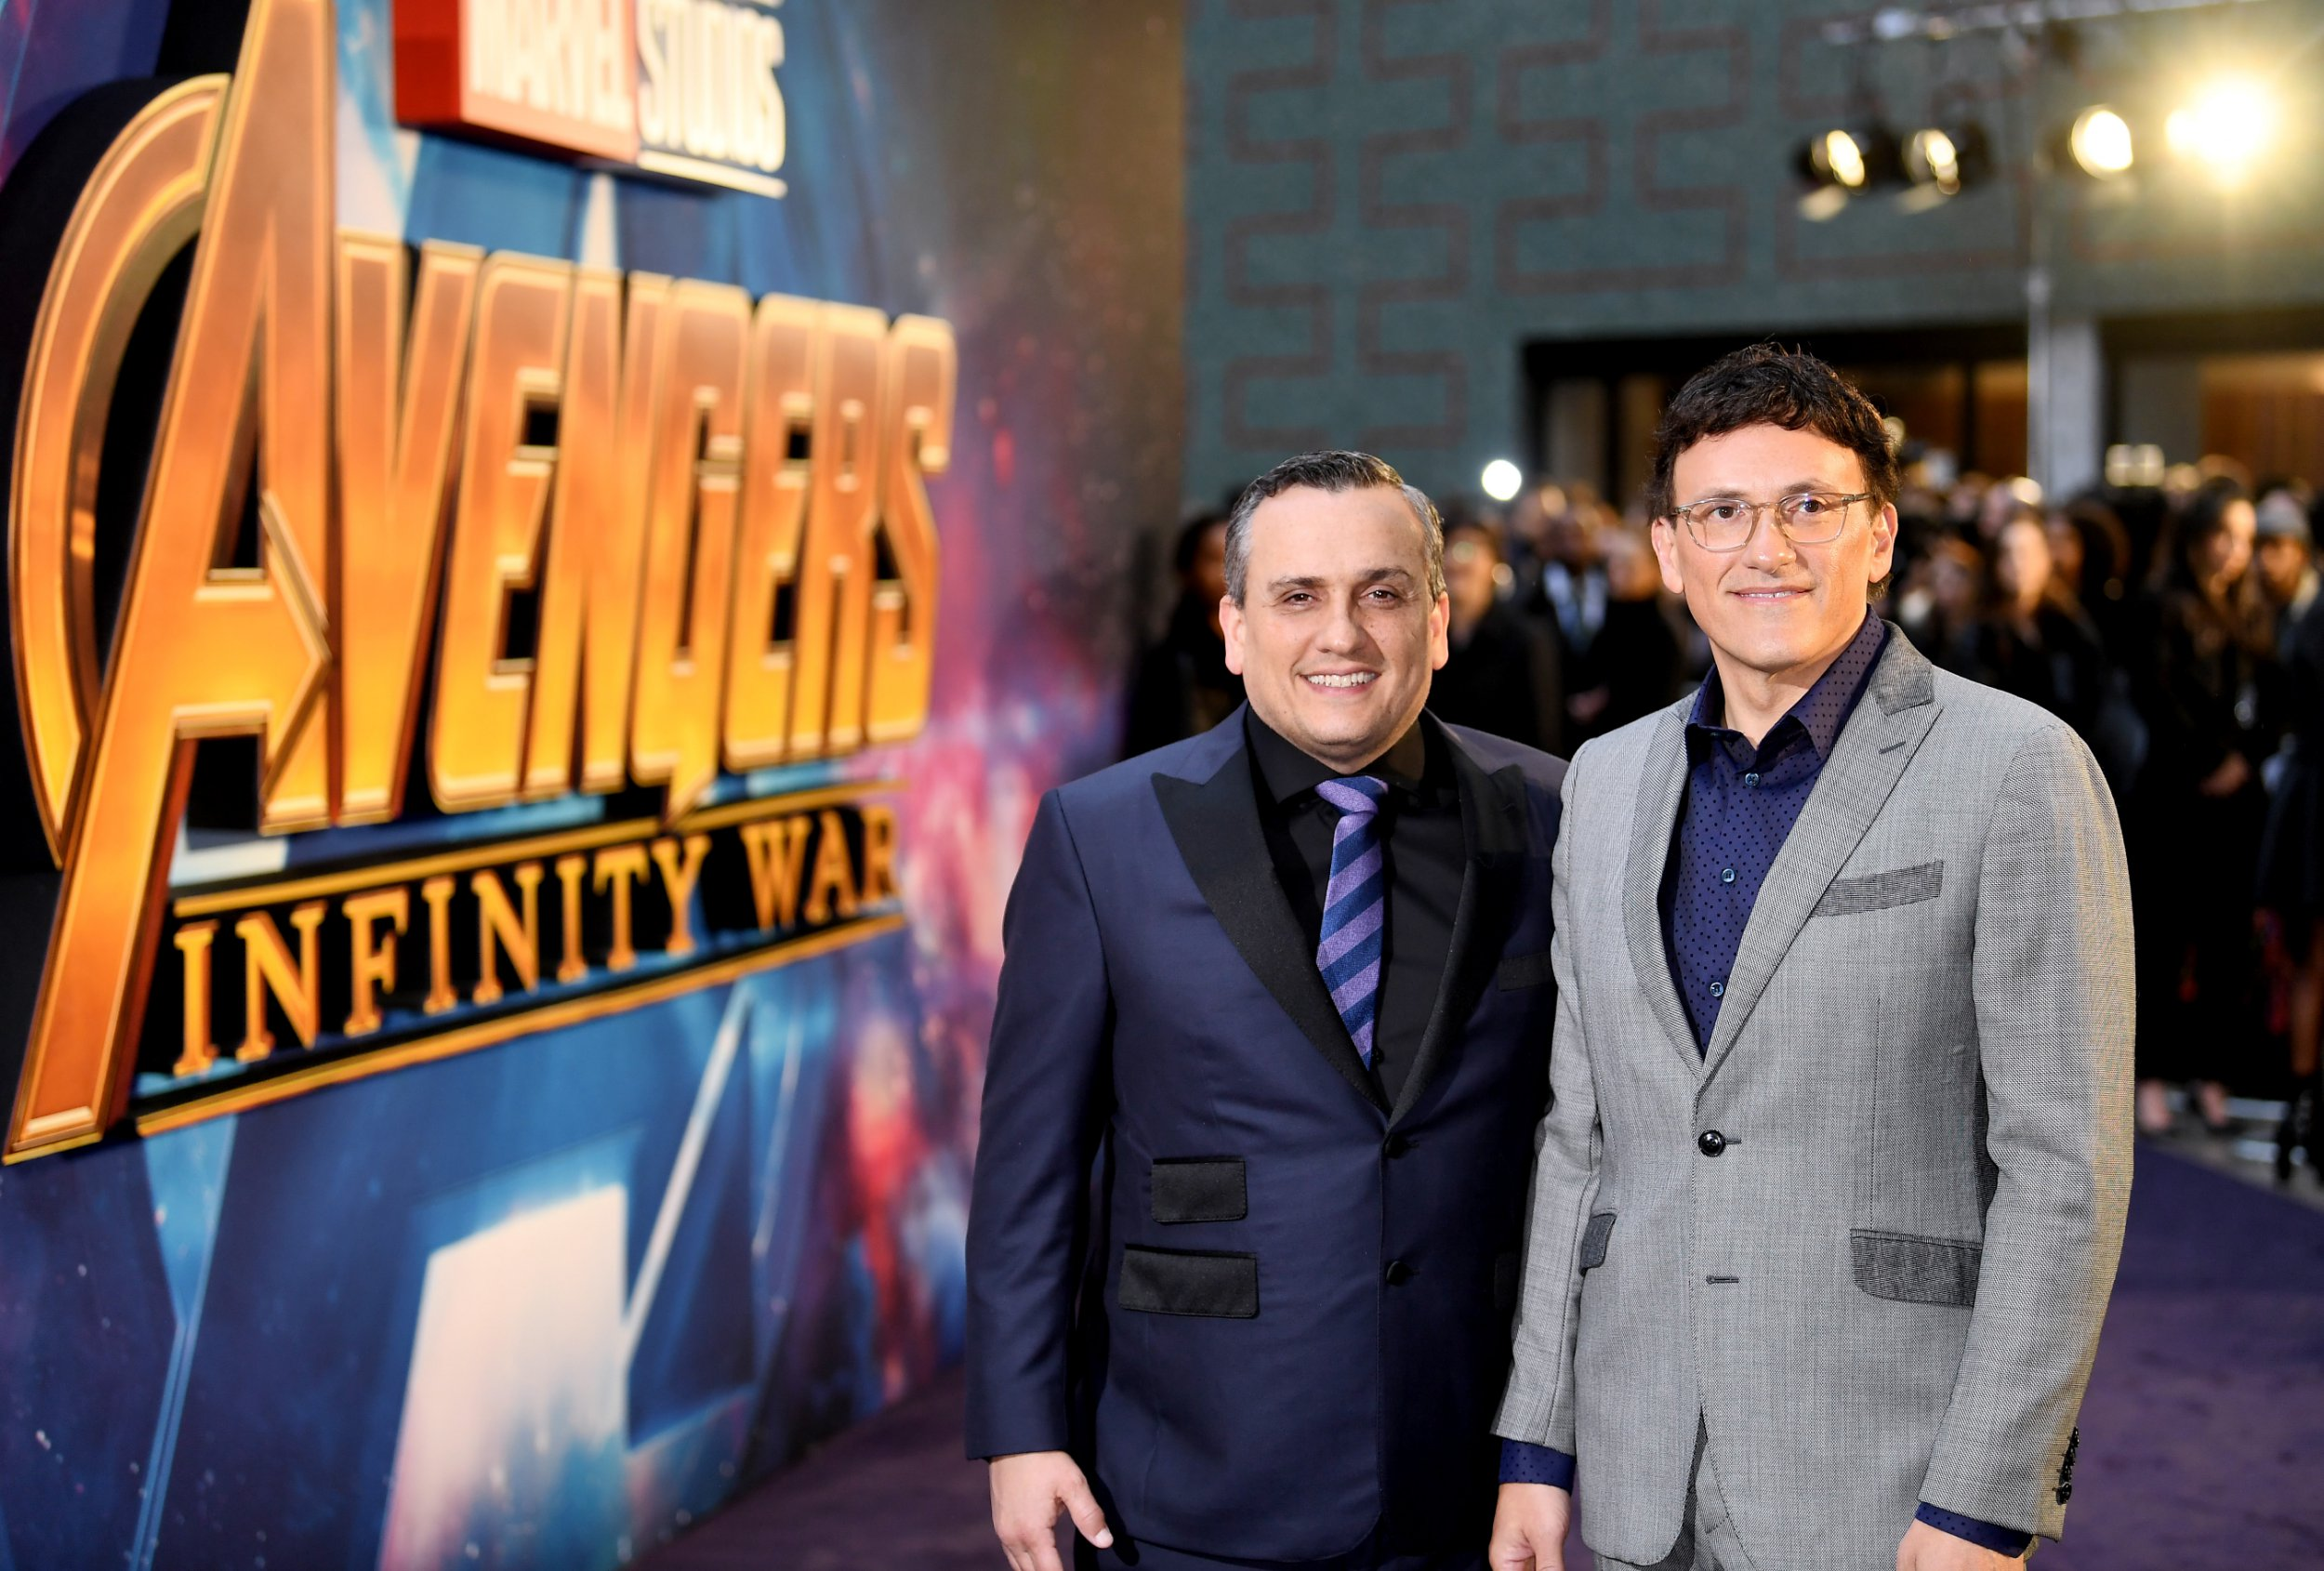 Mandatory Credit: Photo by James Gourley/REX/Shutterstock (9570300al) Anthony Russo and Joe Russo 'Avengers: Infinity War' film fans event, London UK - 08 Apr 2018